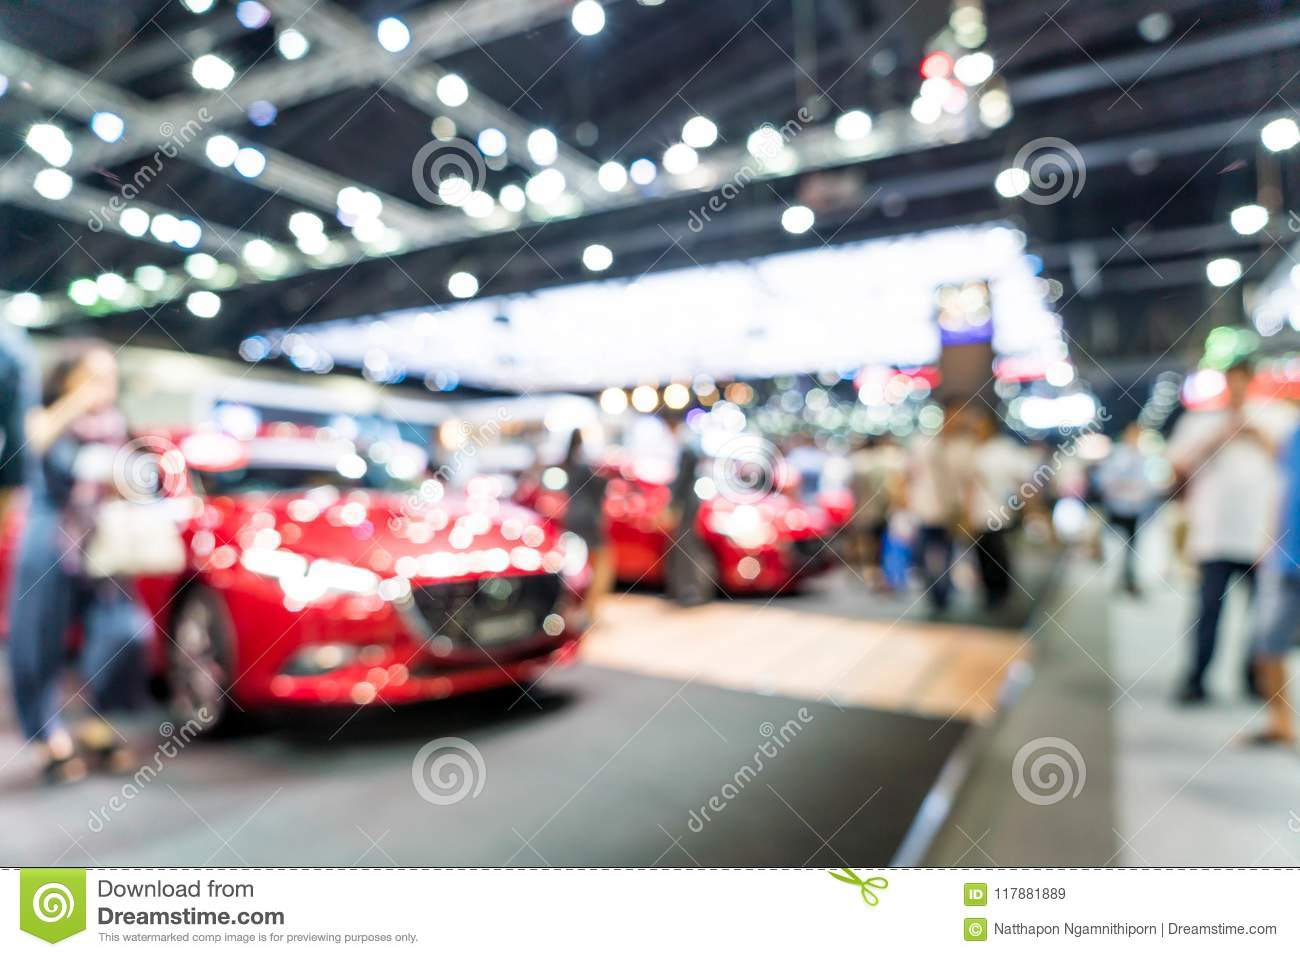 Abstract blur and defocused car and motor exhibition show event